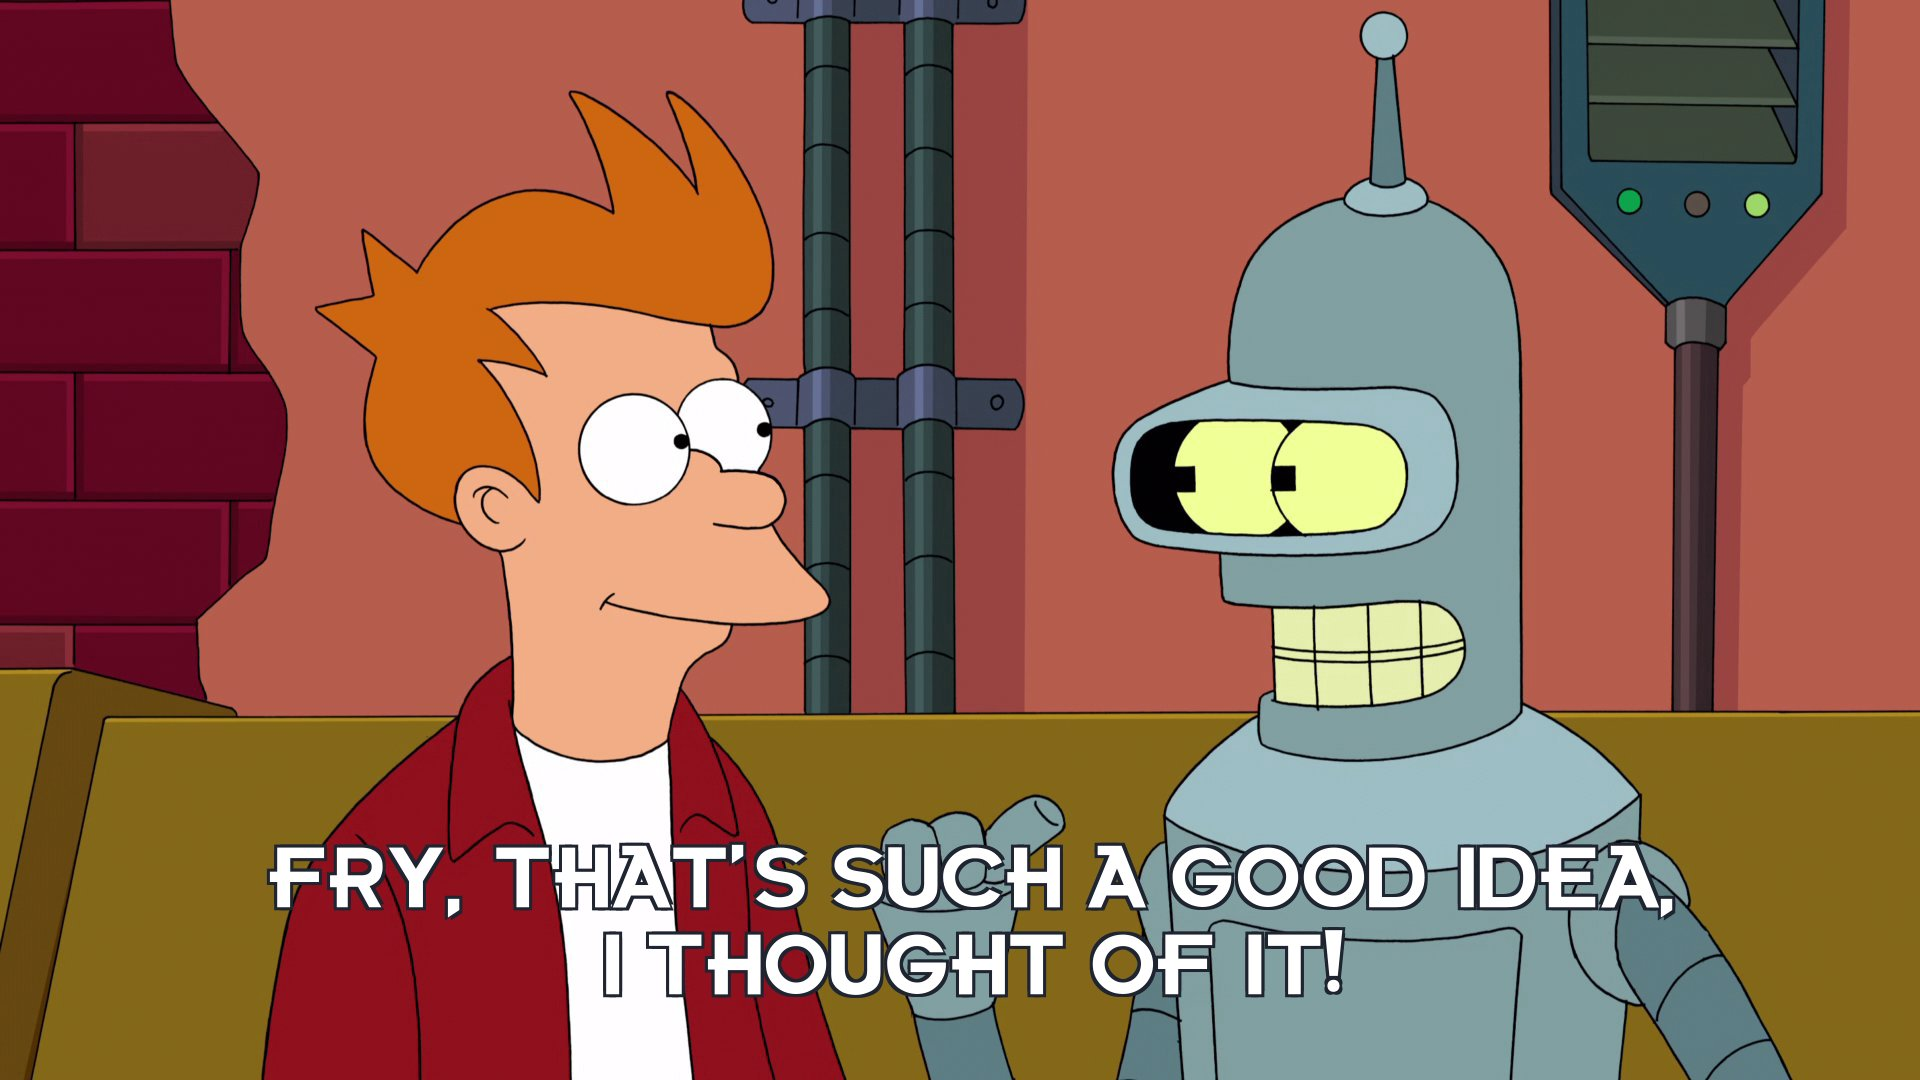 Bender Bending Rodriguez: Fry, that's such a good idea, I thought of it!